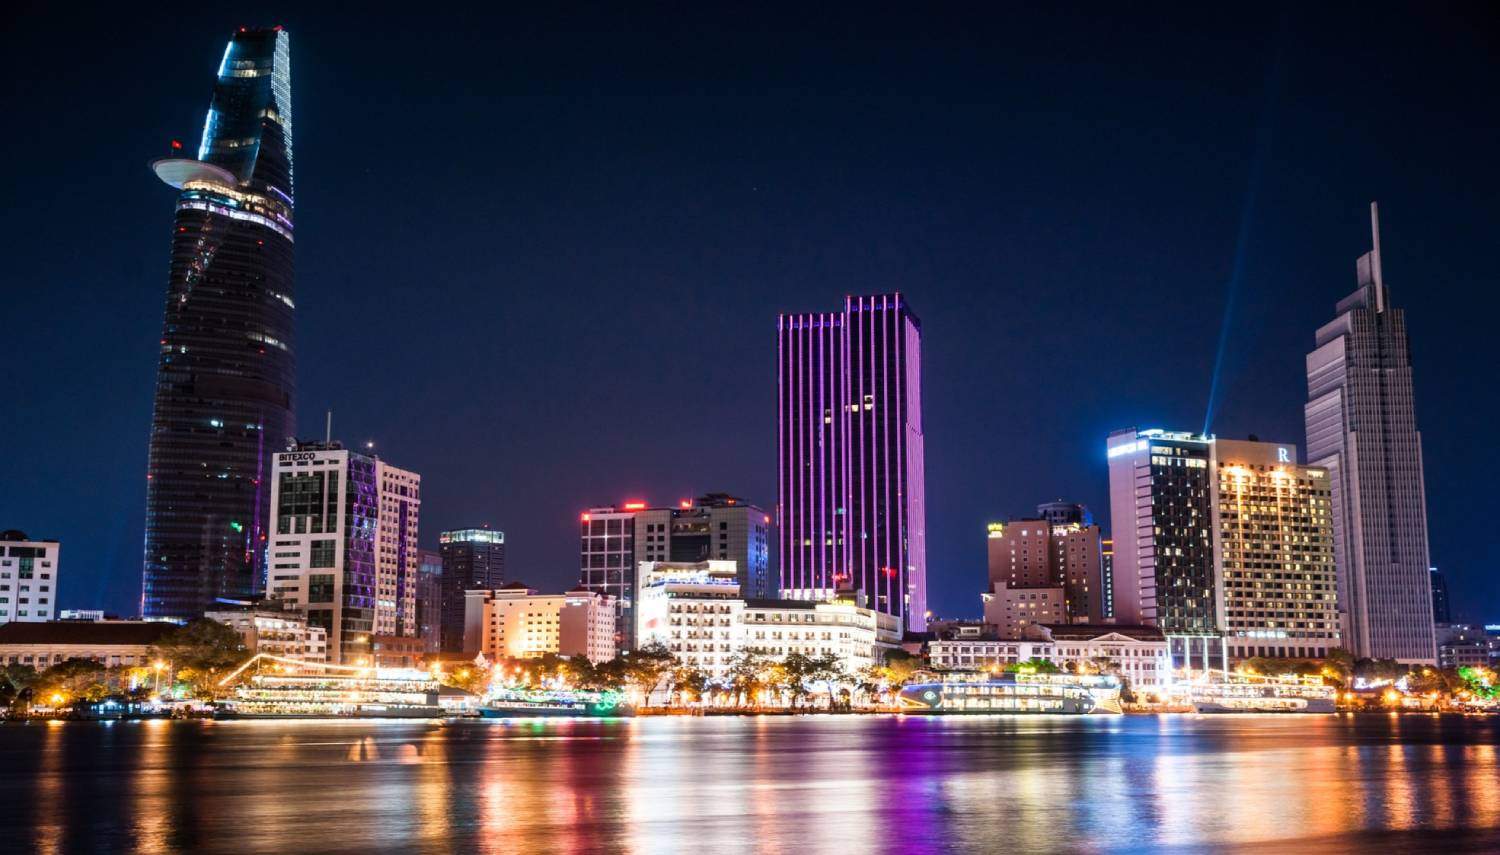 Saigon River - Things To Do In Ho Chi Minh City